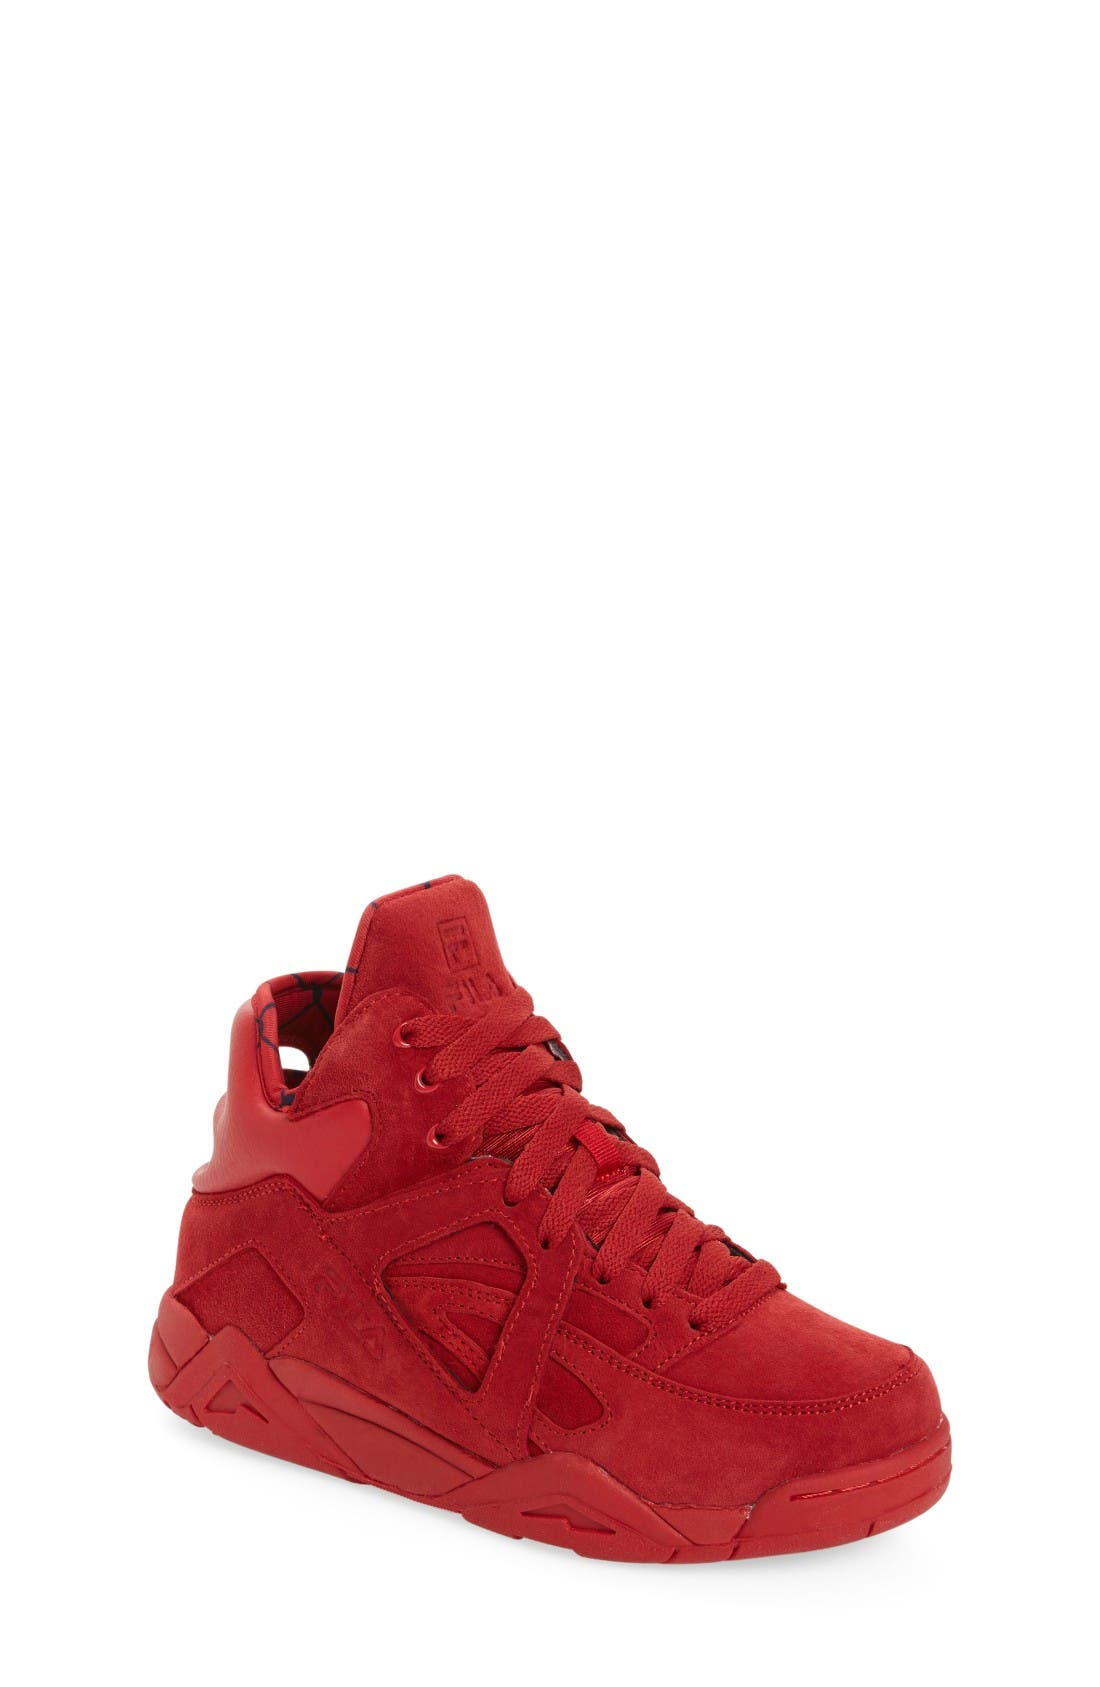 The Cage High Top Sneaker,                             Main thumbnail 1, color,                             Red Suede